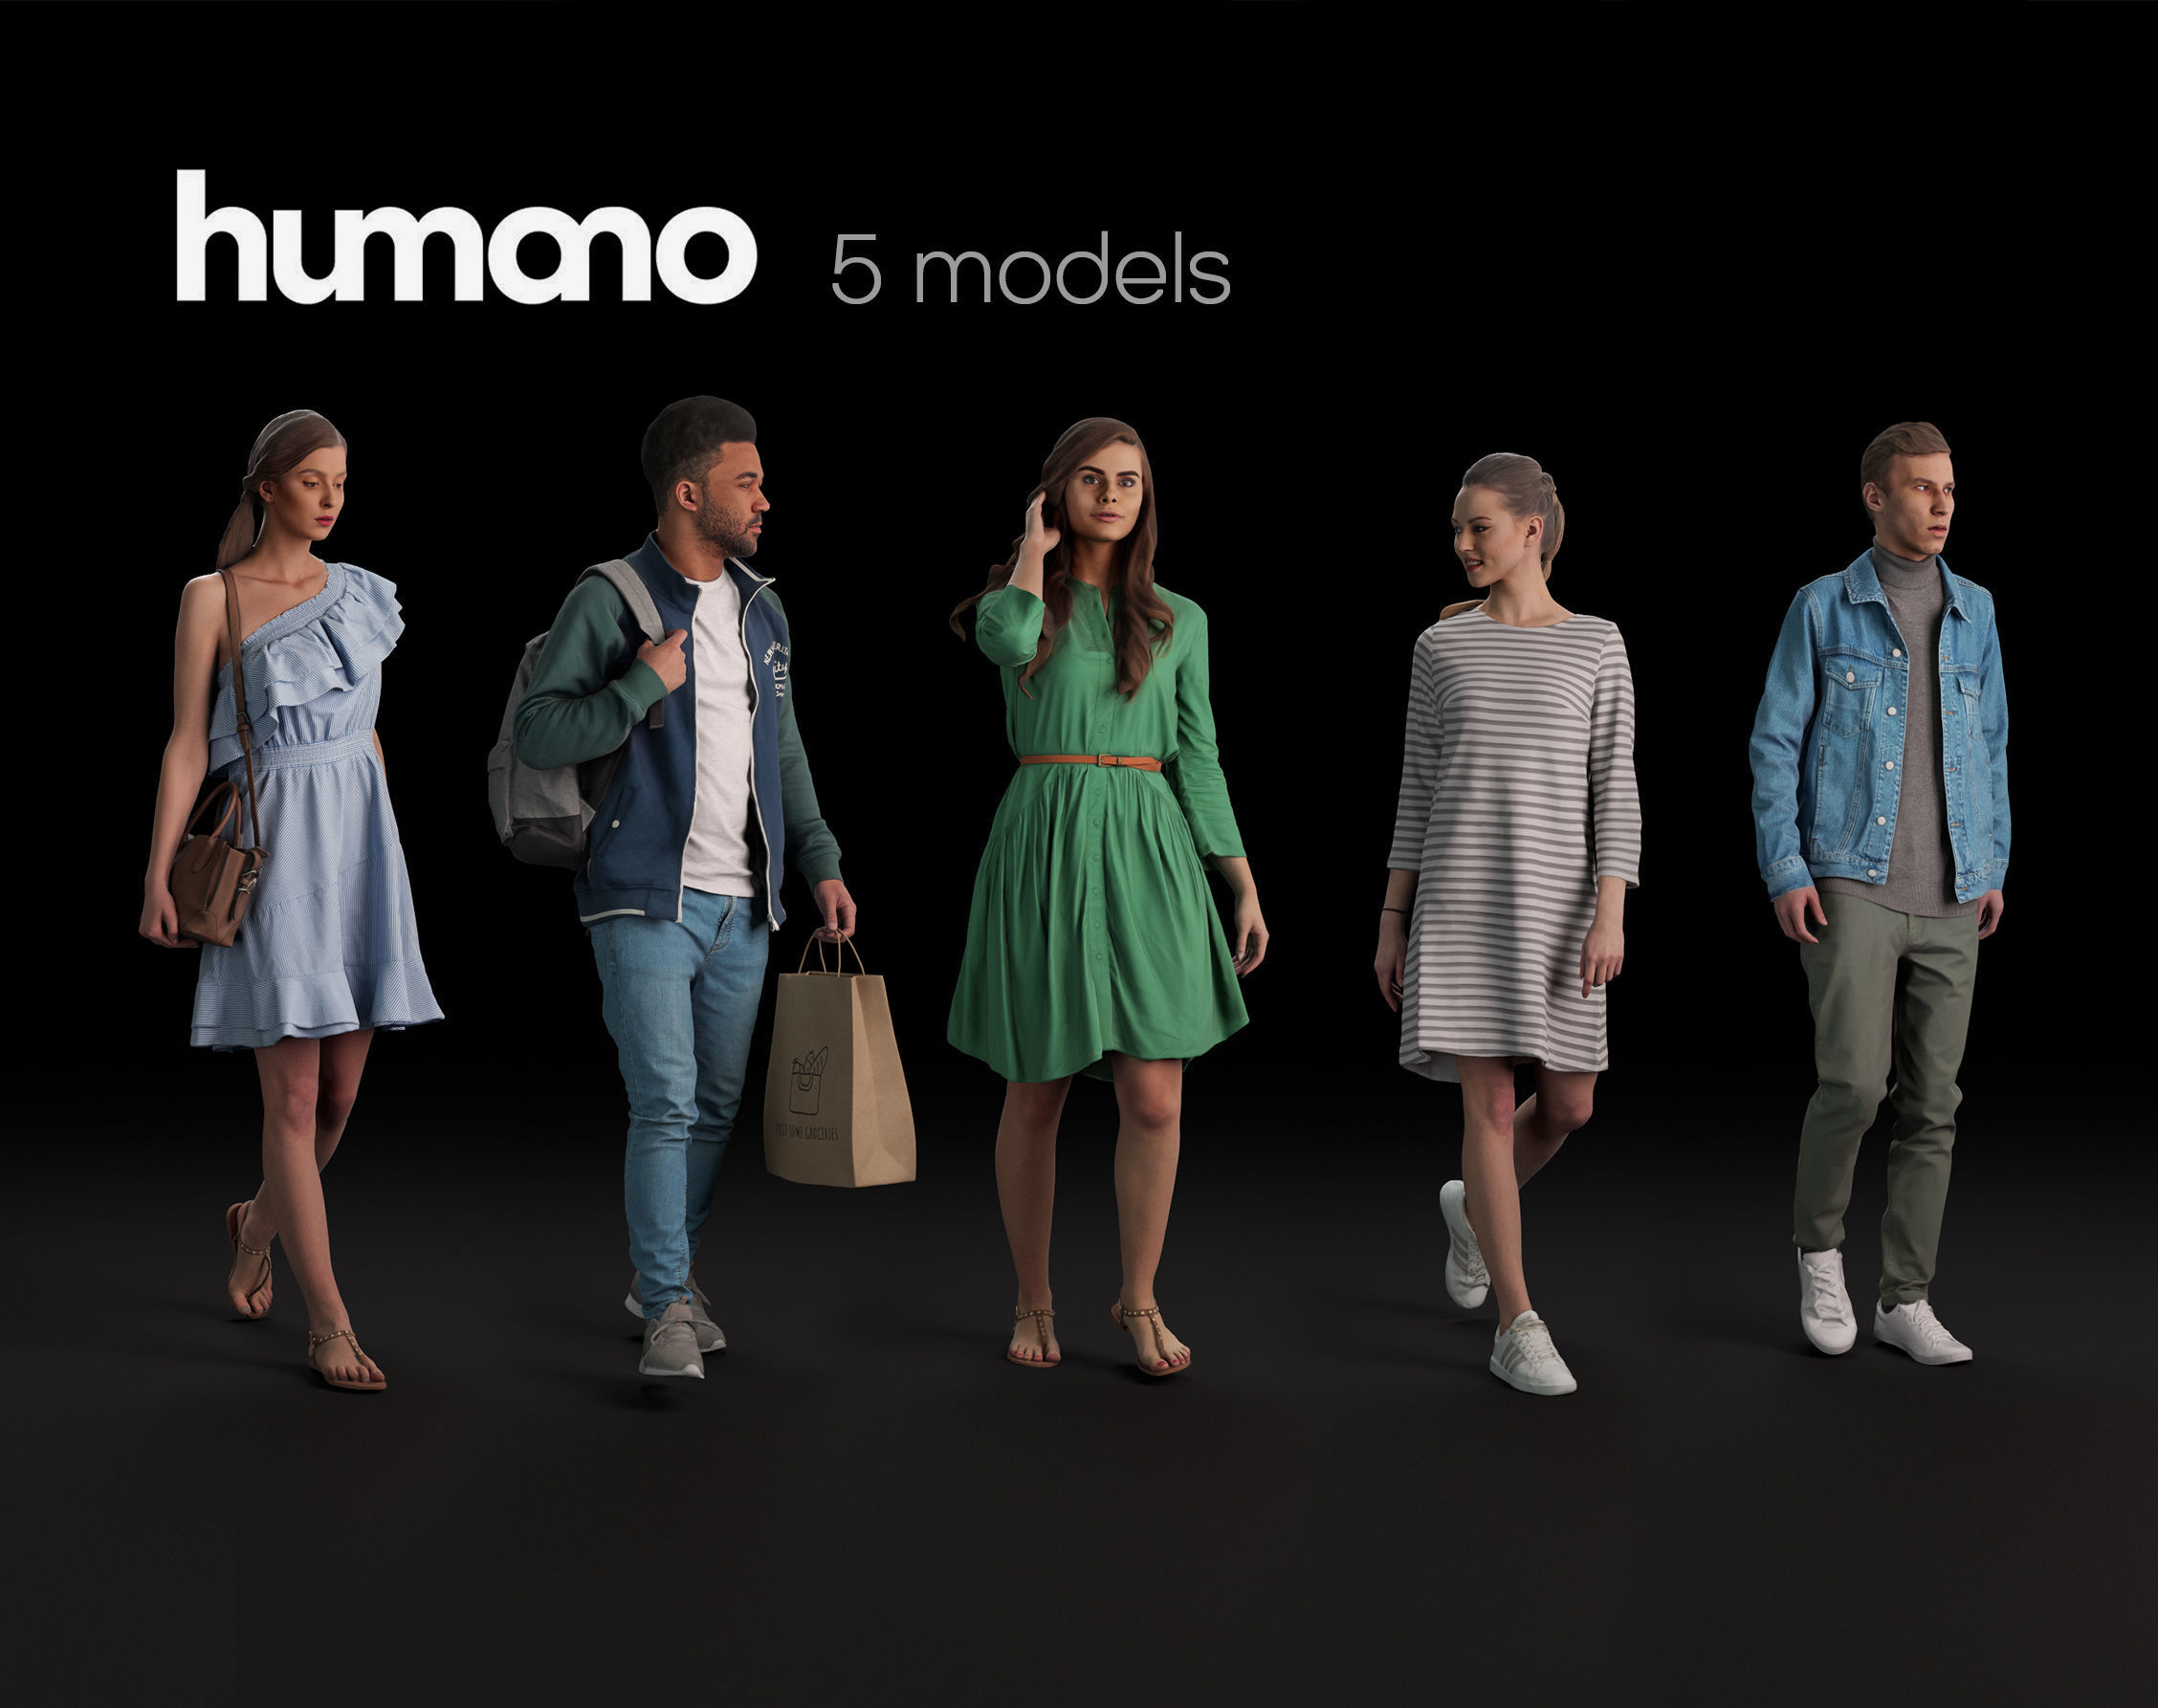 Humano 5-Pack - PEOPLE - DIVERSE - STREET - 5x 3D models 04B